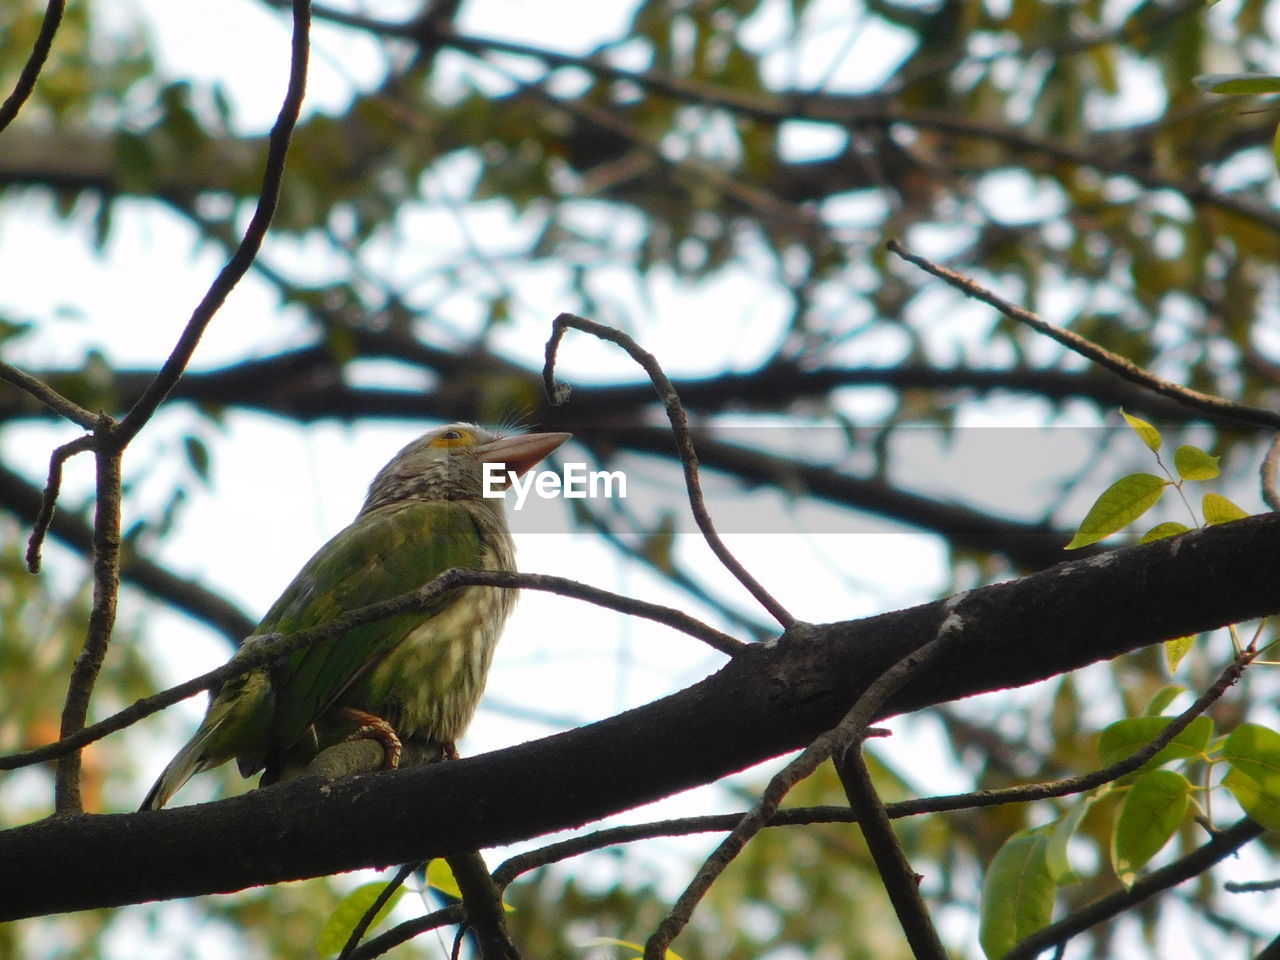 bird, perching, vertebrate, animal themes, animal, branch, one animal, animal wildlife, animals in the wild, tree, plant, low angle view, focus on foreground, no people, day, nature, outdoors, twig, close-up, sky